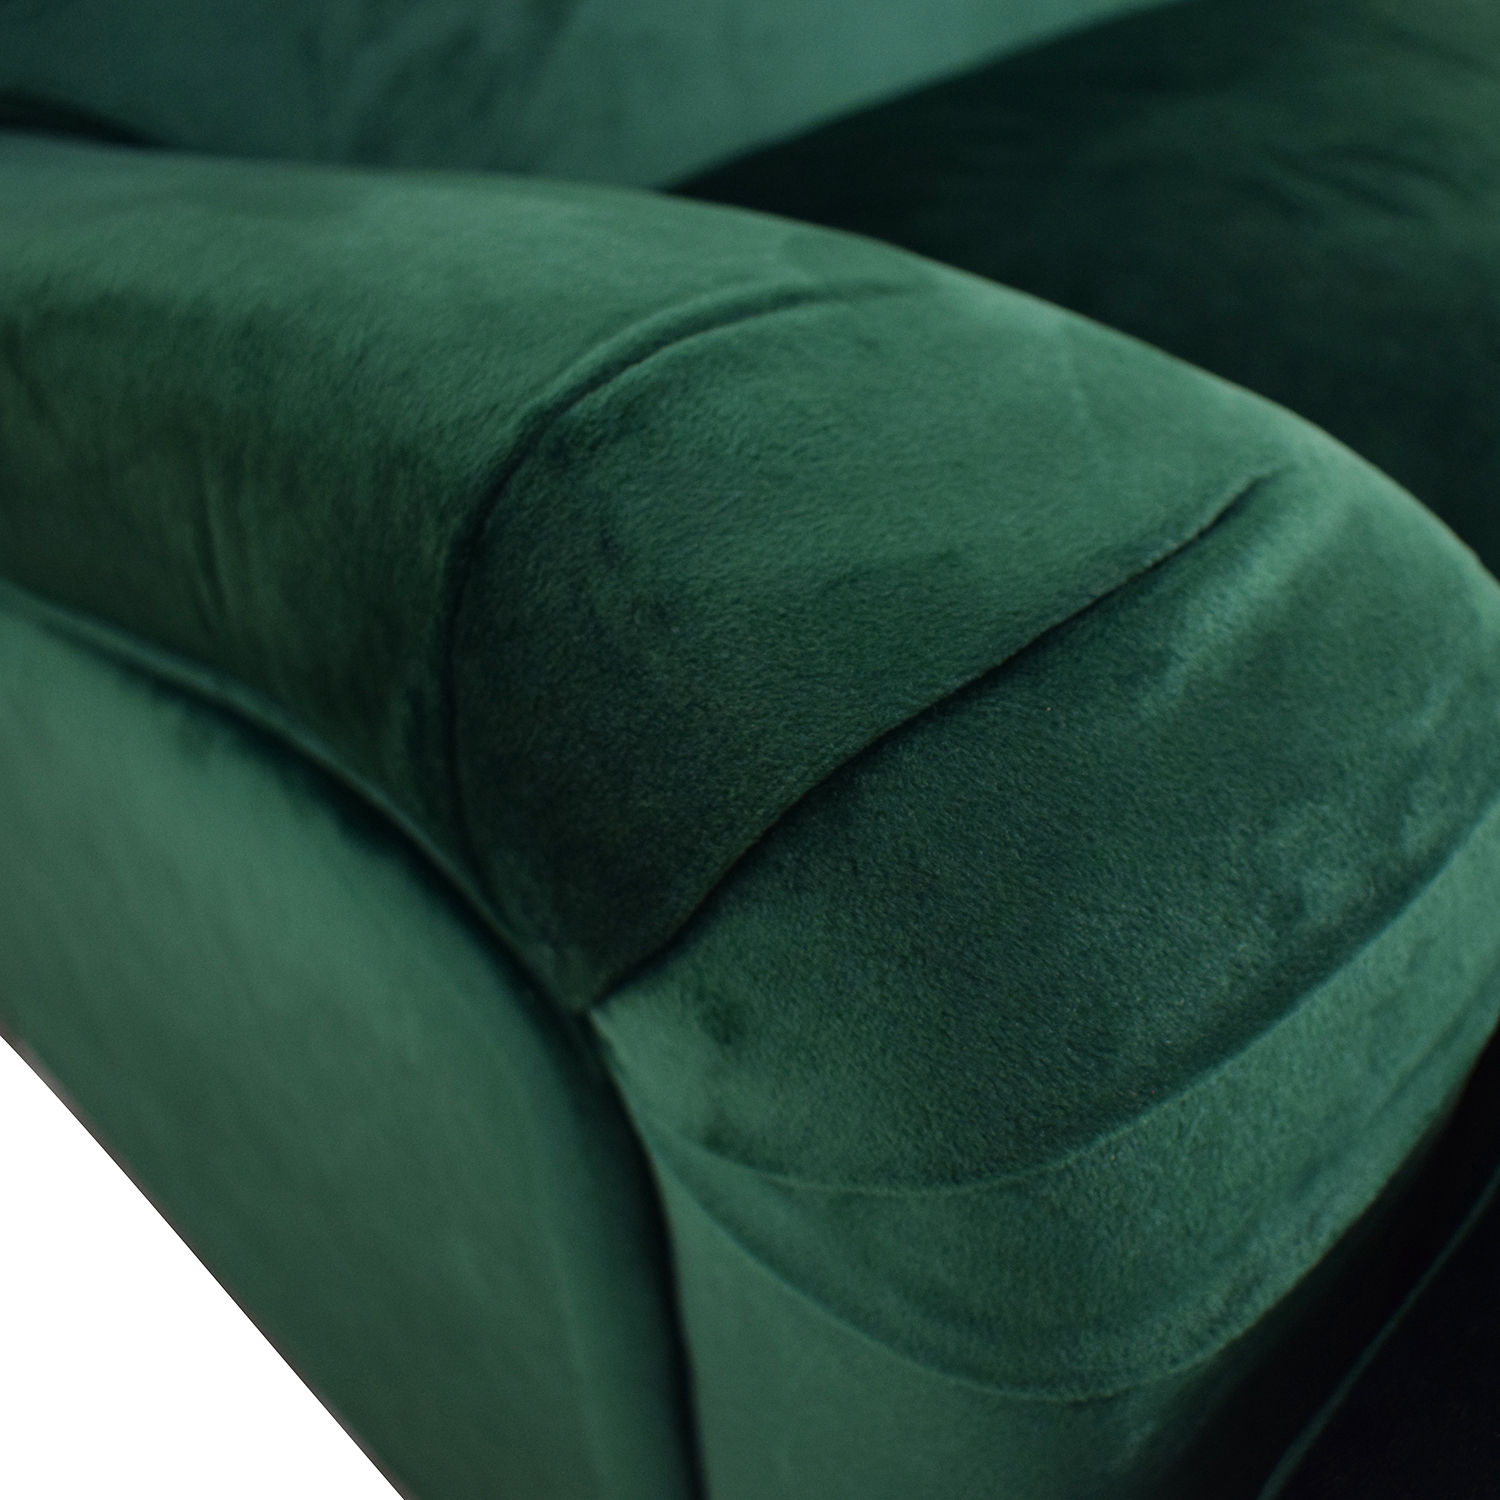 Rose Emerald Green Chair on sale